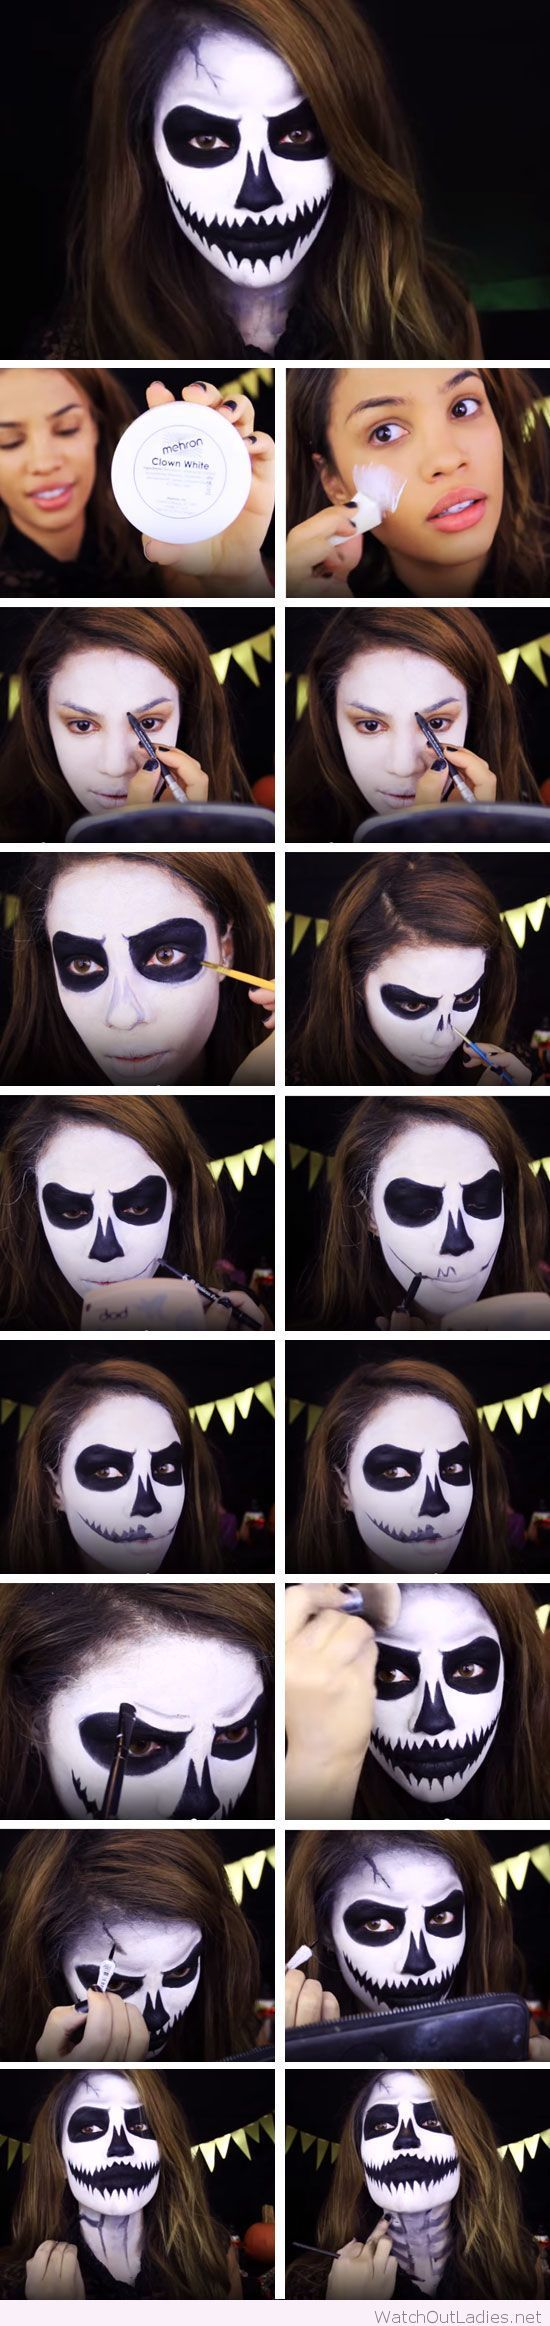 White and black makeup for Halloween